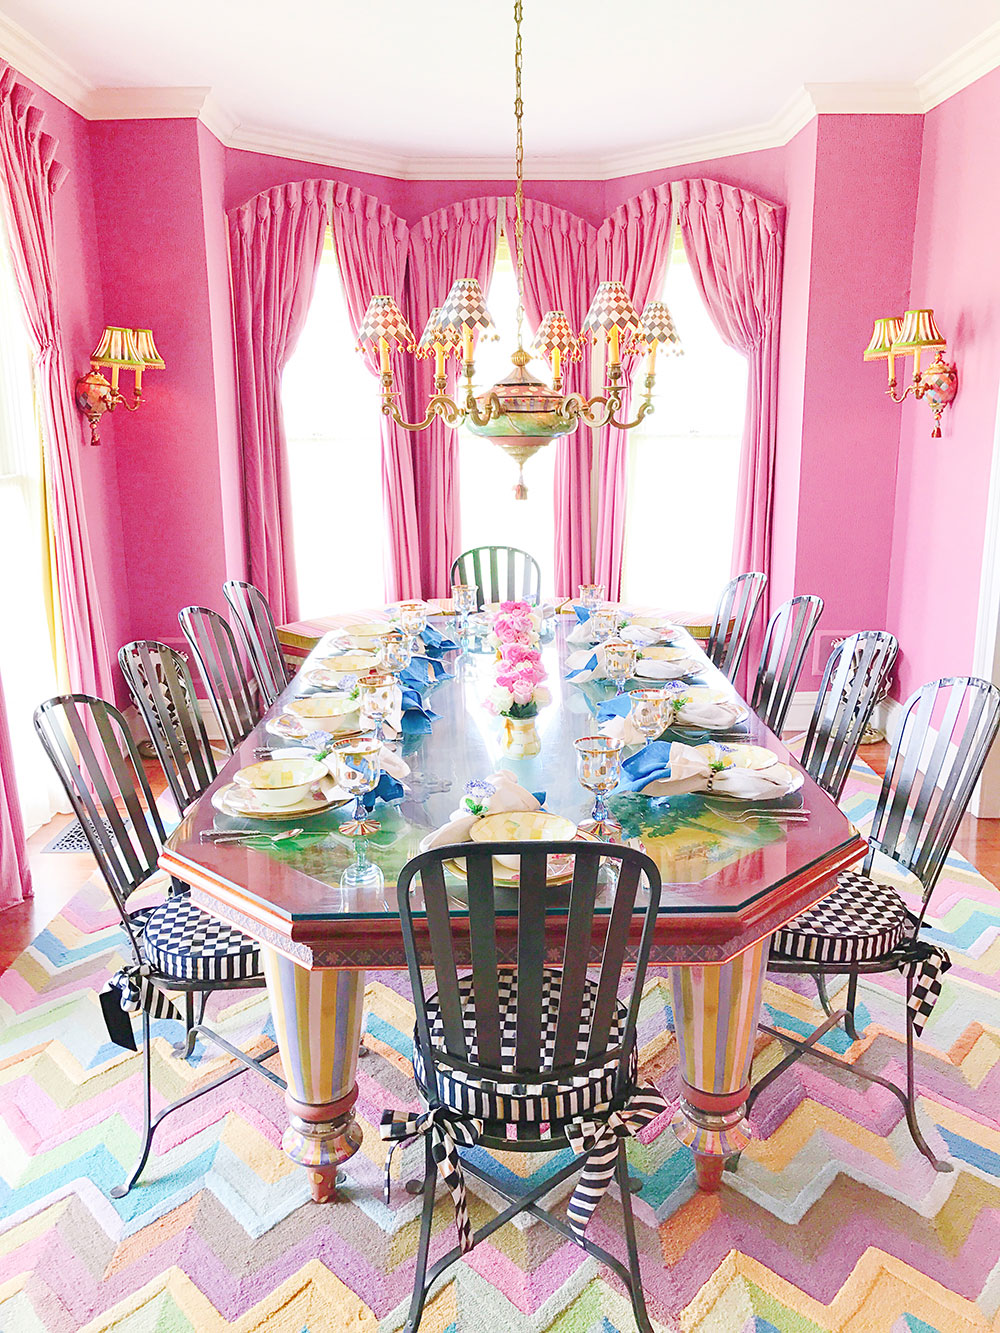 mackenzie-childs-headquarters-pink-dining-room